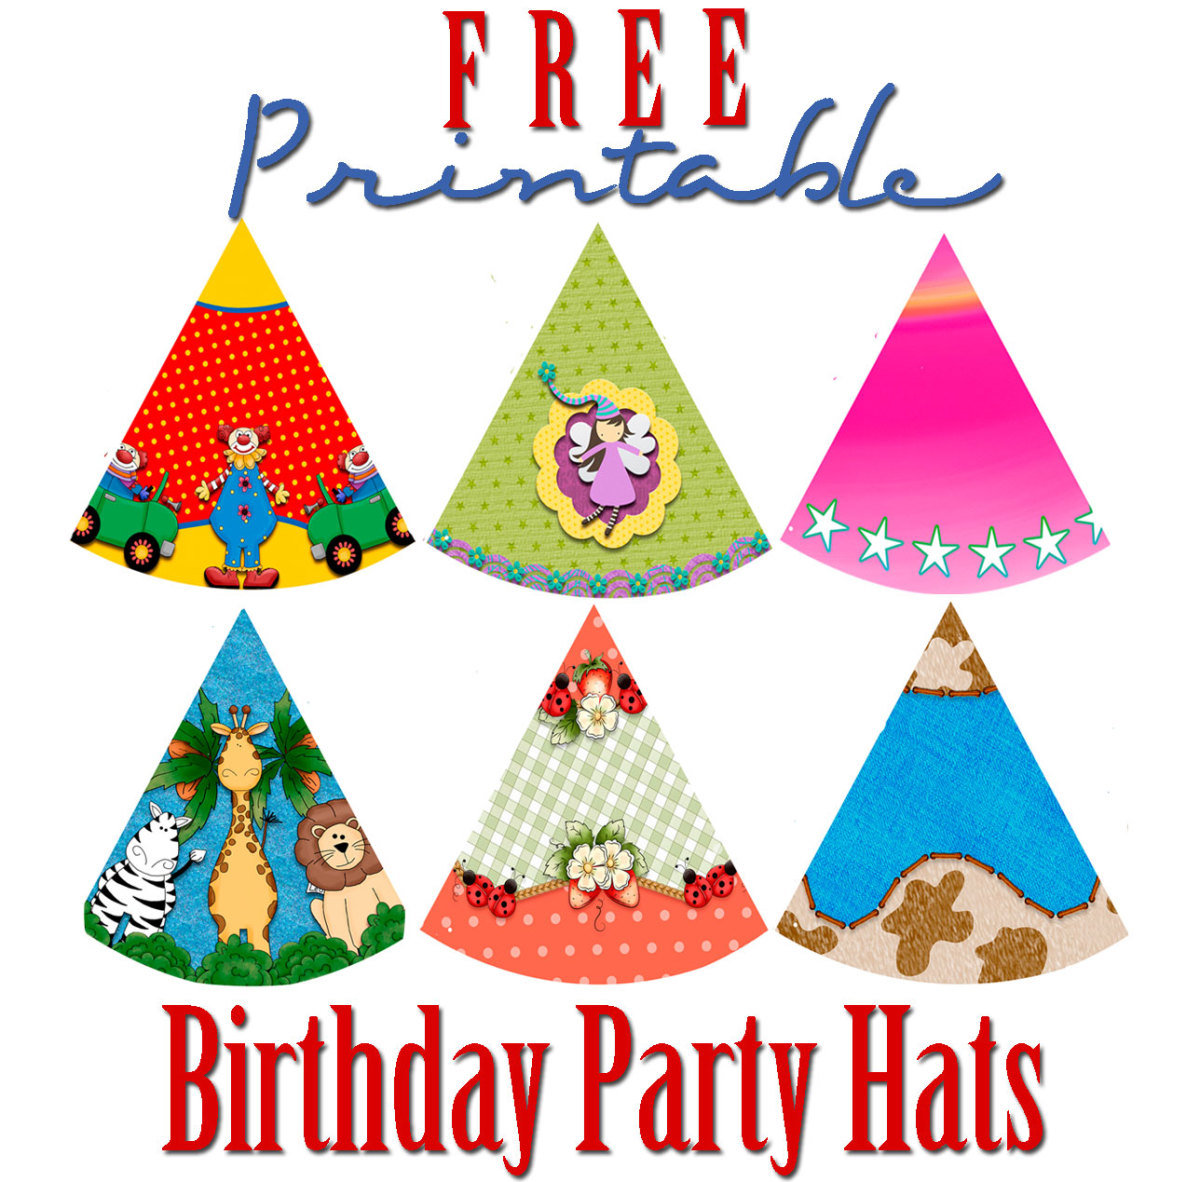 Free Printable Birthday Party Hats HubPages